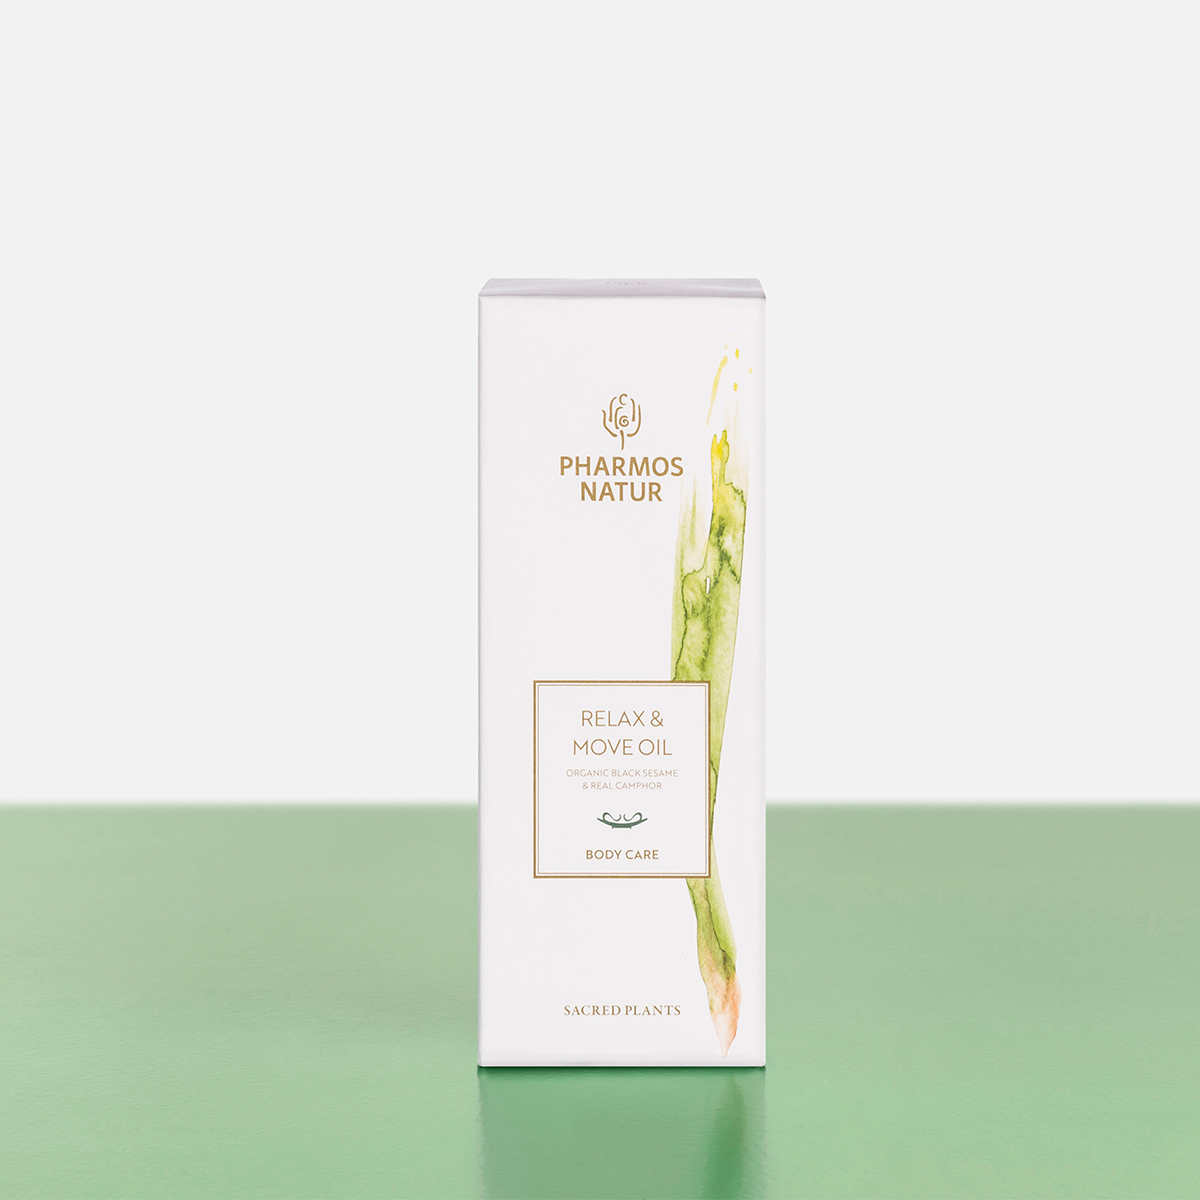 Verpackung Relax and Move Oil Produktbild